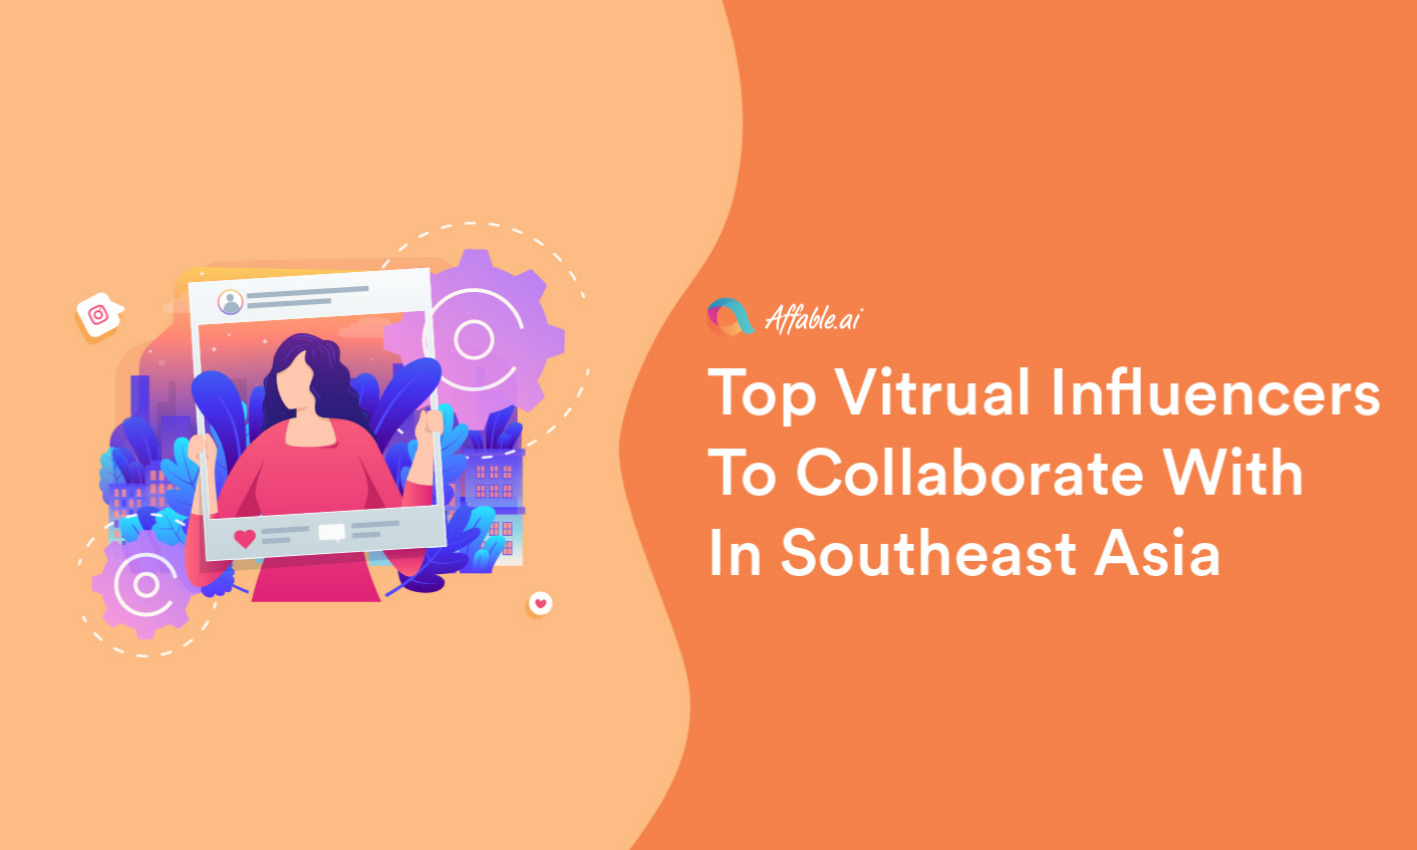 Top Virtual Influencers to Collaborate Within Southeast Asia